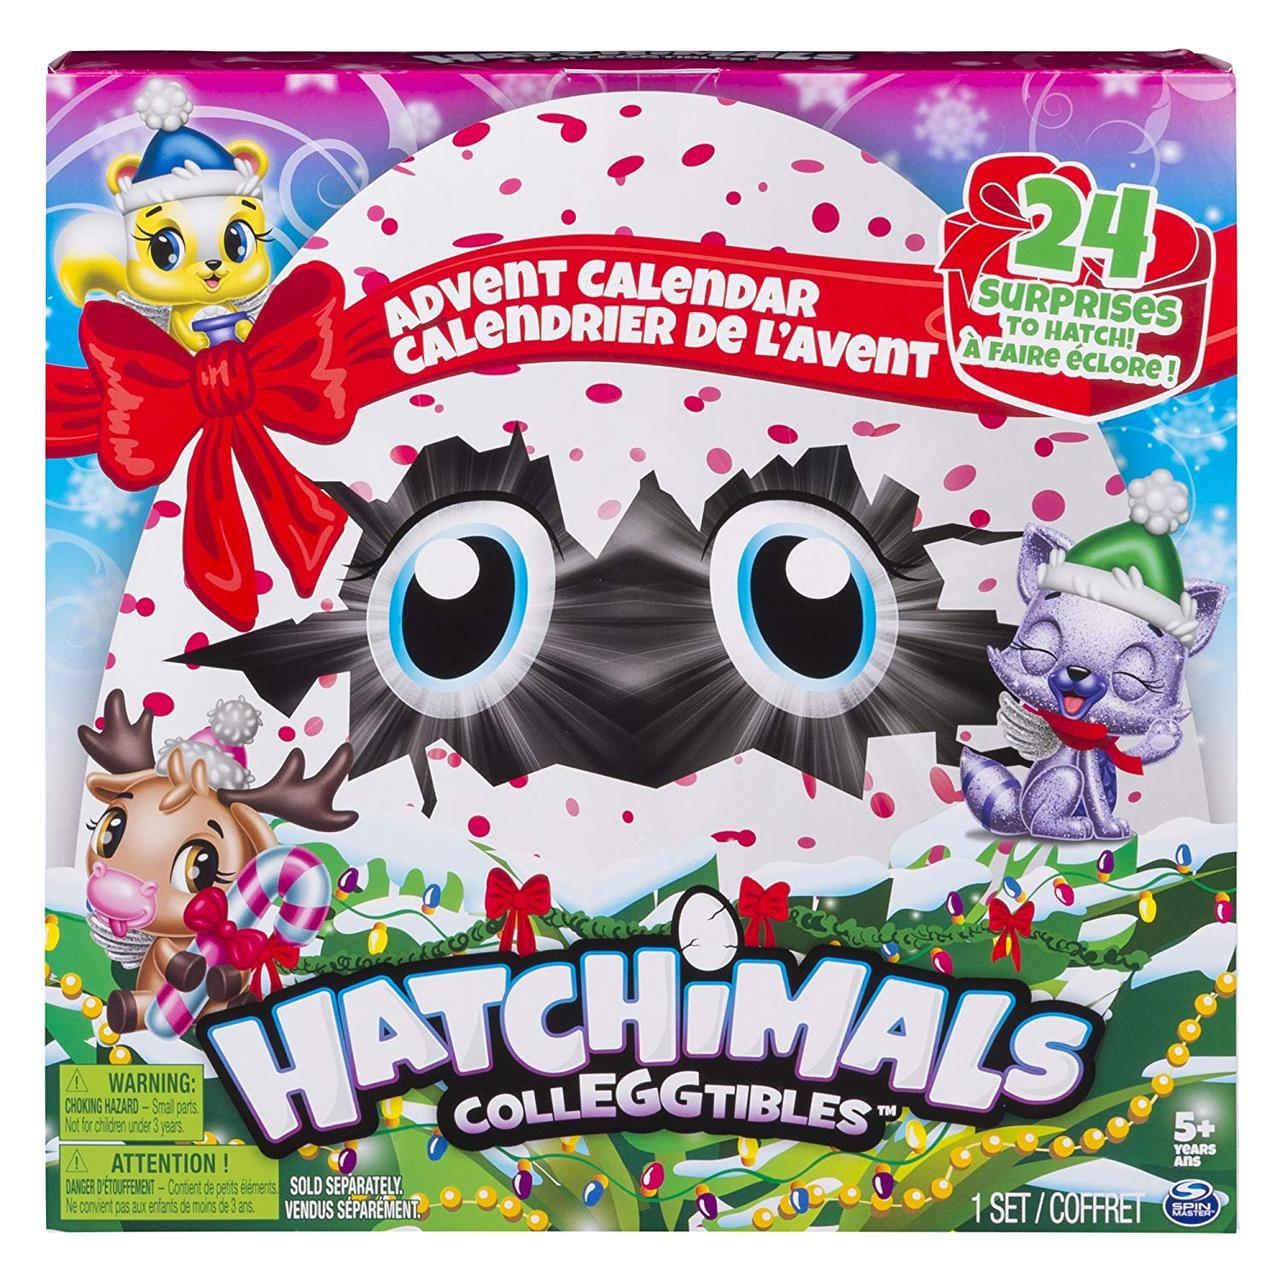 Набор Адвент календарь 24+ сюрприза Хетчималс Hatchimals Colleggtibles - Advent Calendar из США